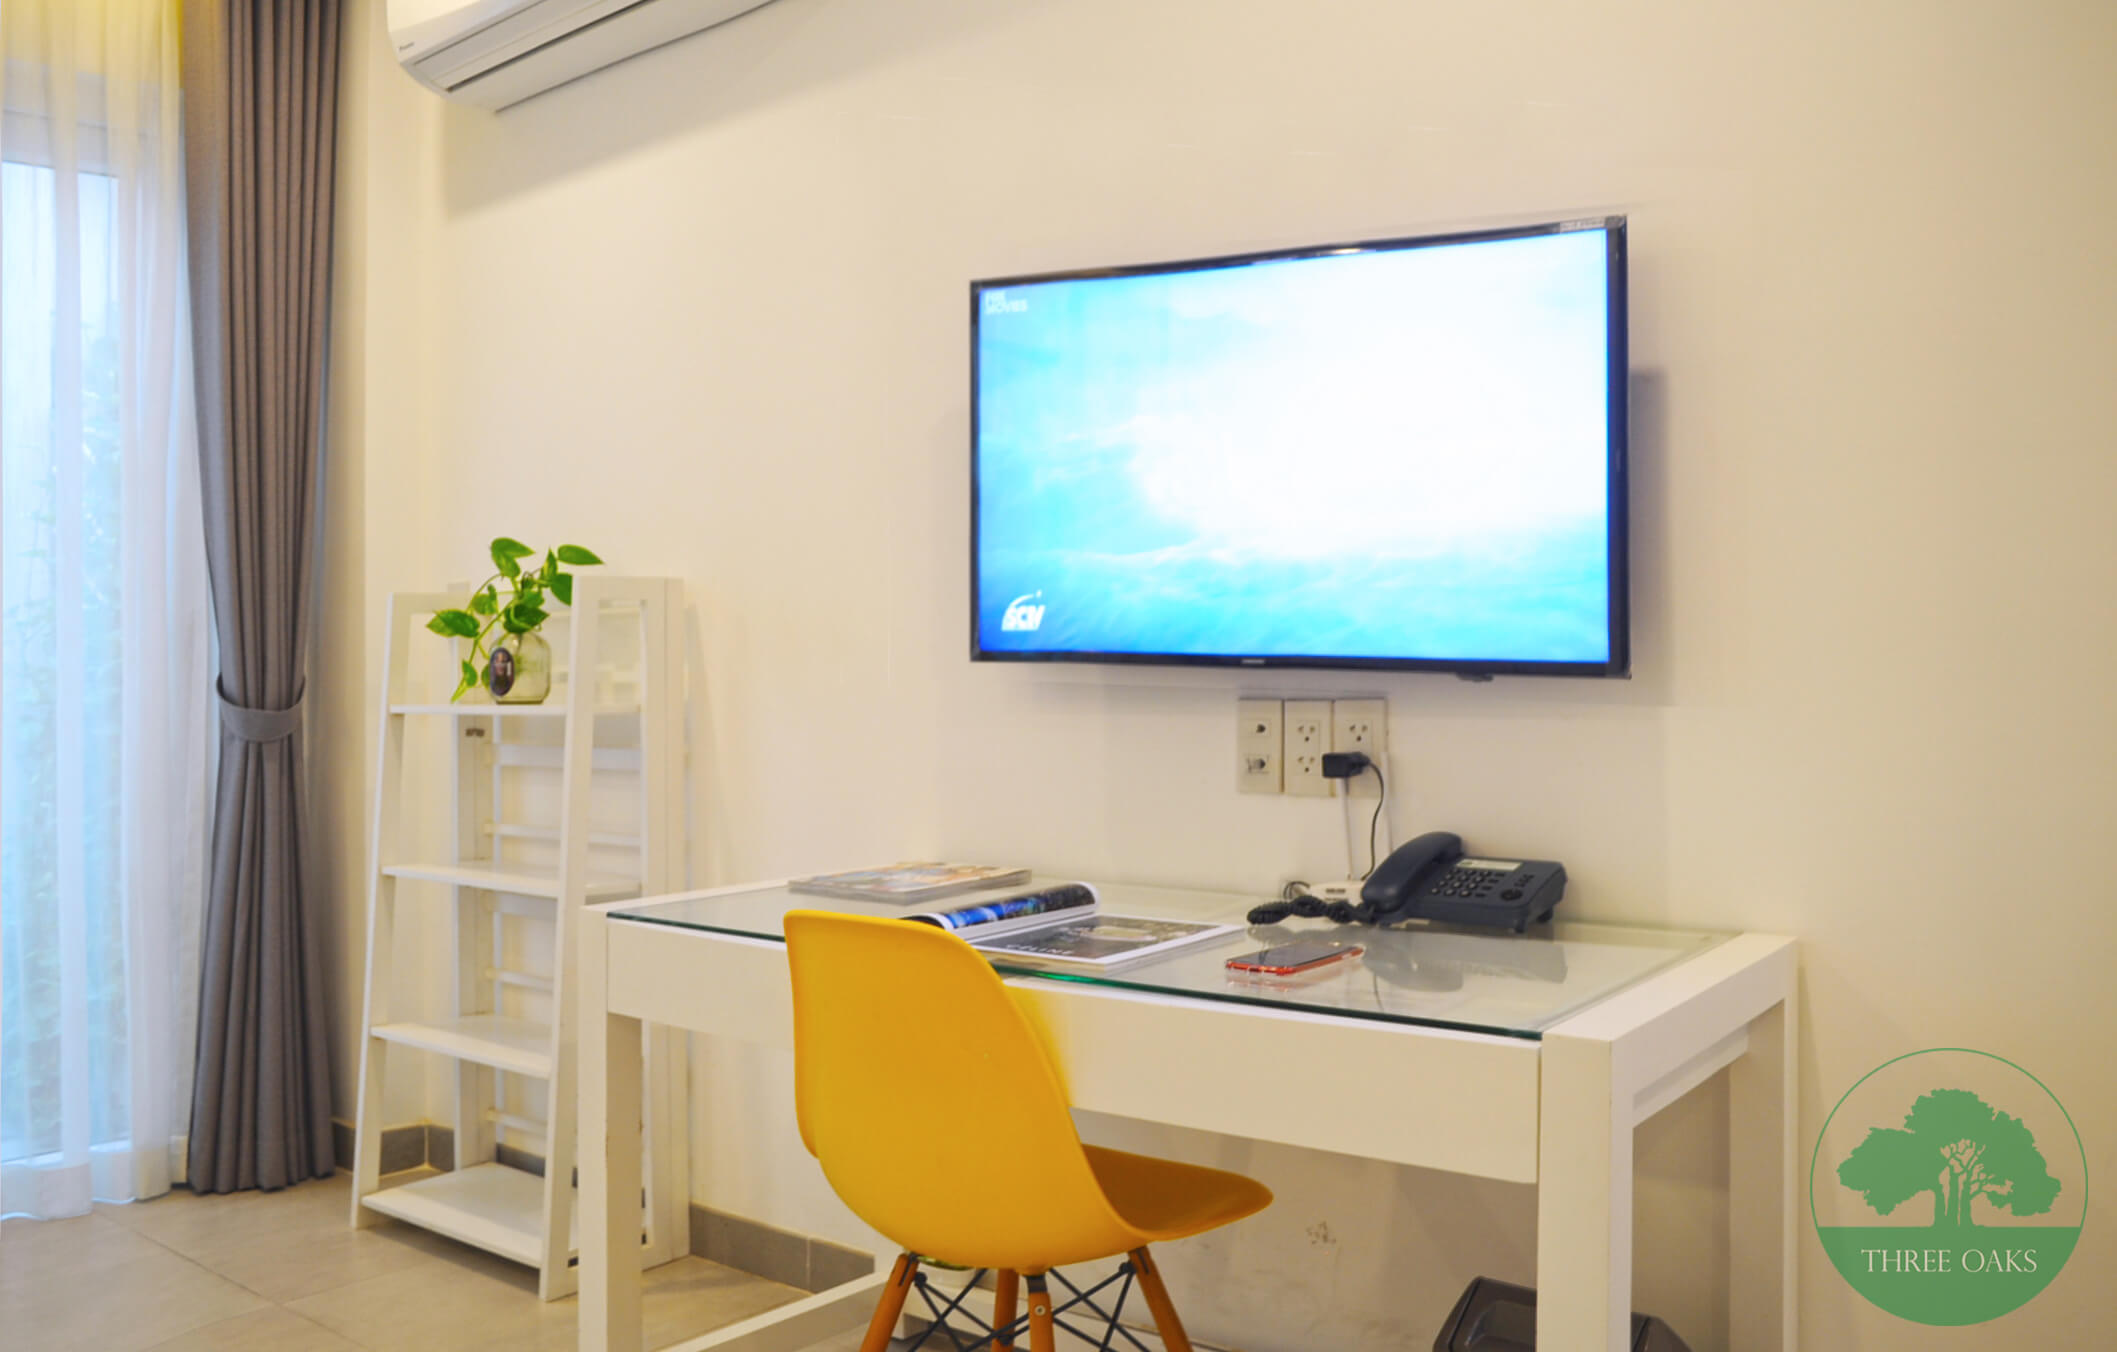 serviced-aparment-room-for-rent-saigon-One-bedroom-with-Small-backyard-5